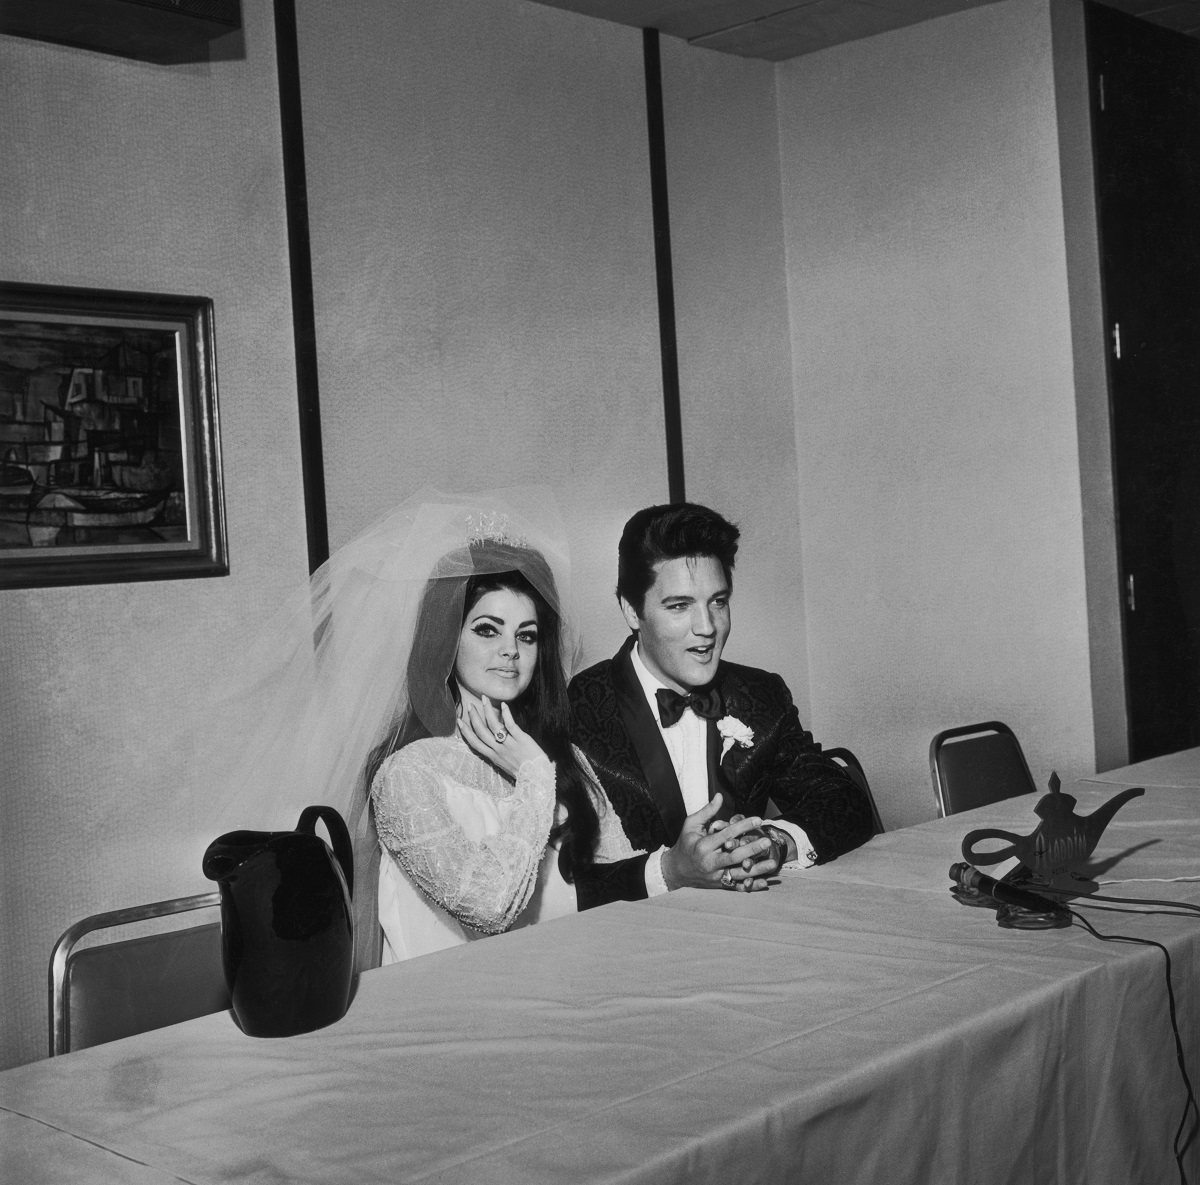 Priscilla and Elvis Presley seated at a table on their wedding day at the Aladdin Hotel in Las Vegas in 1967